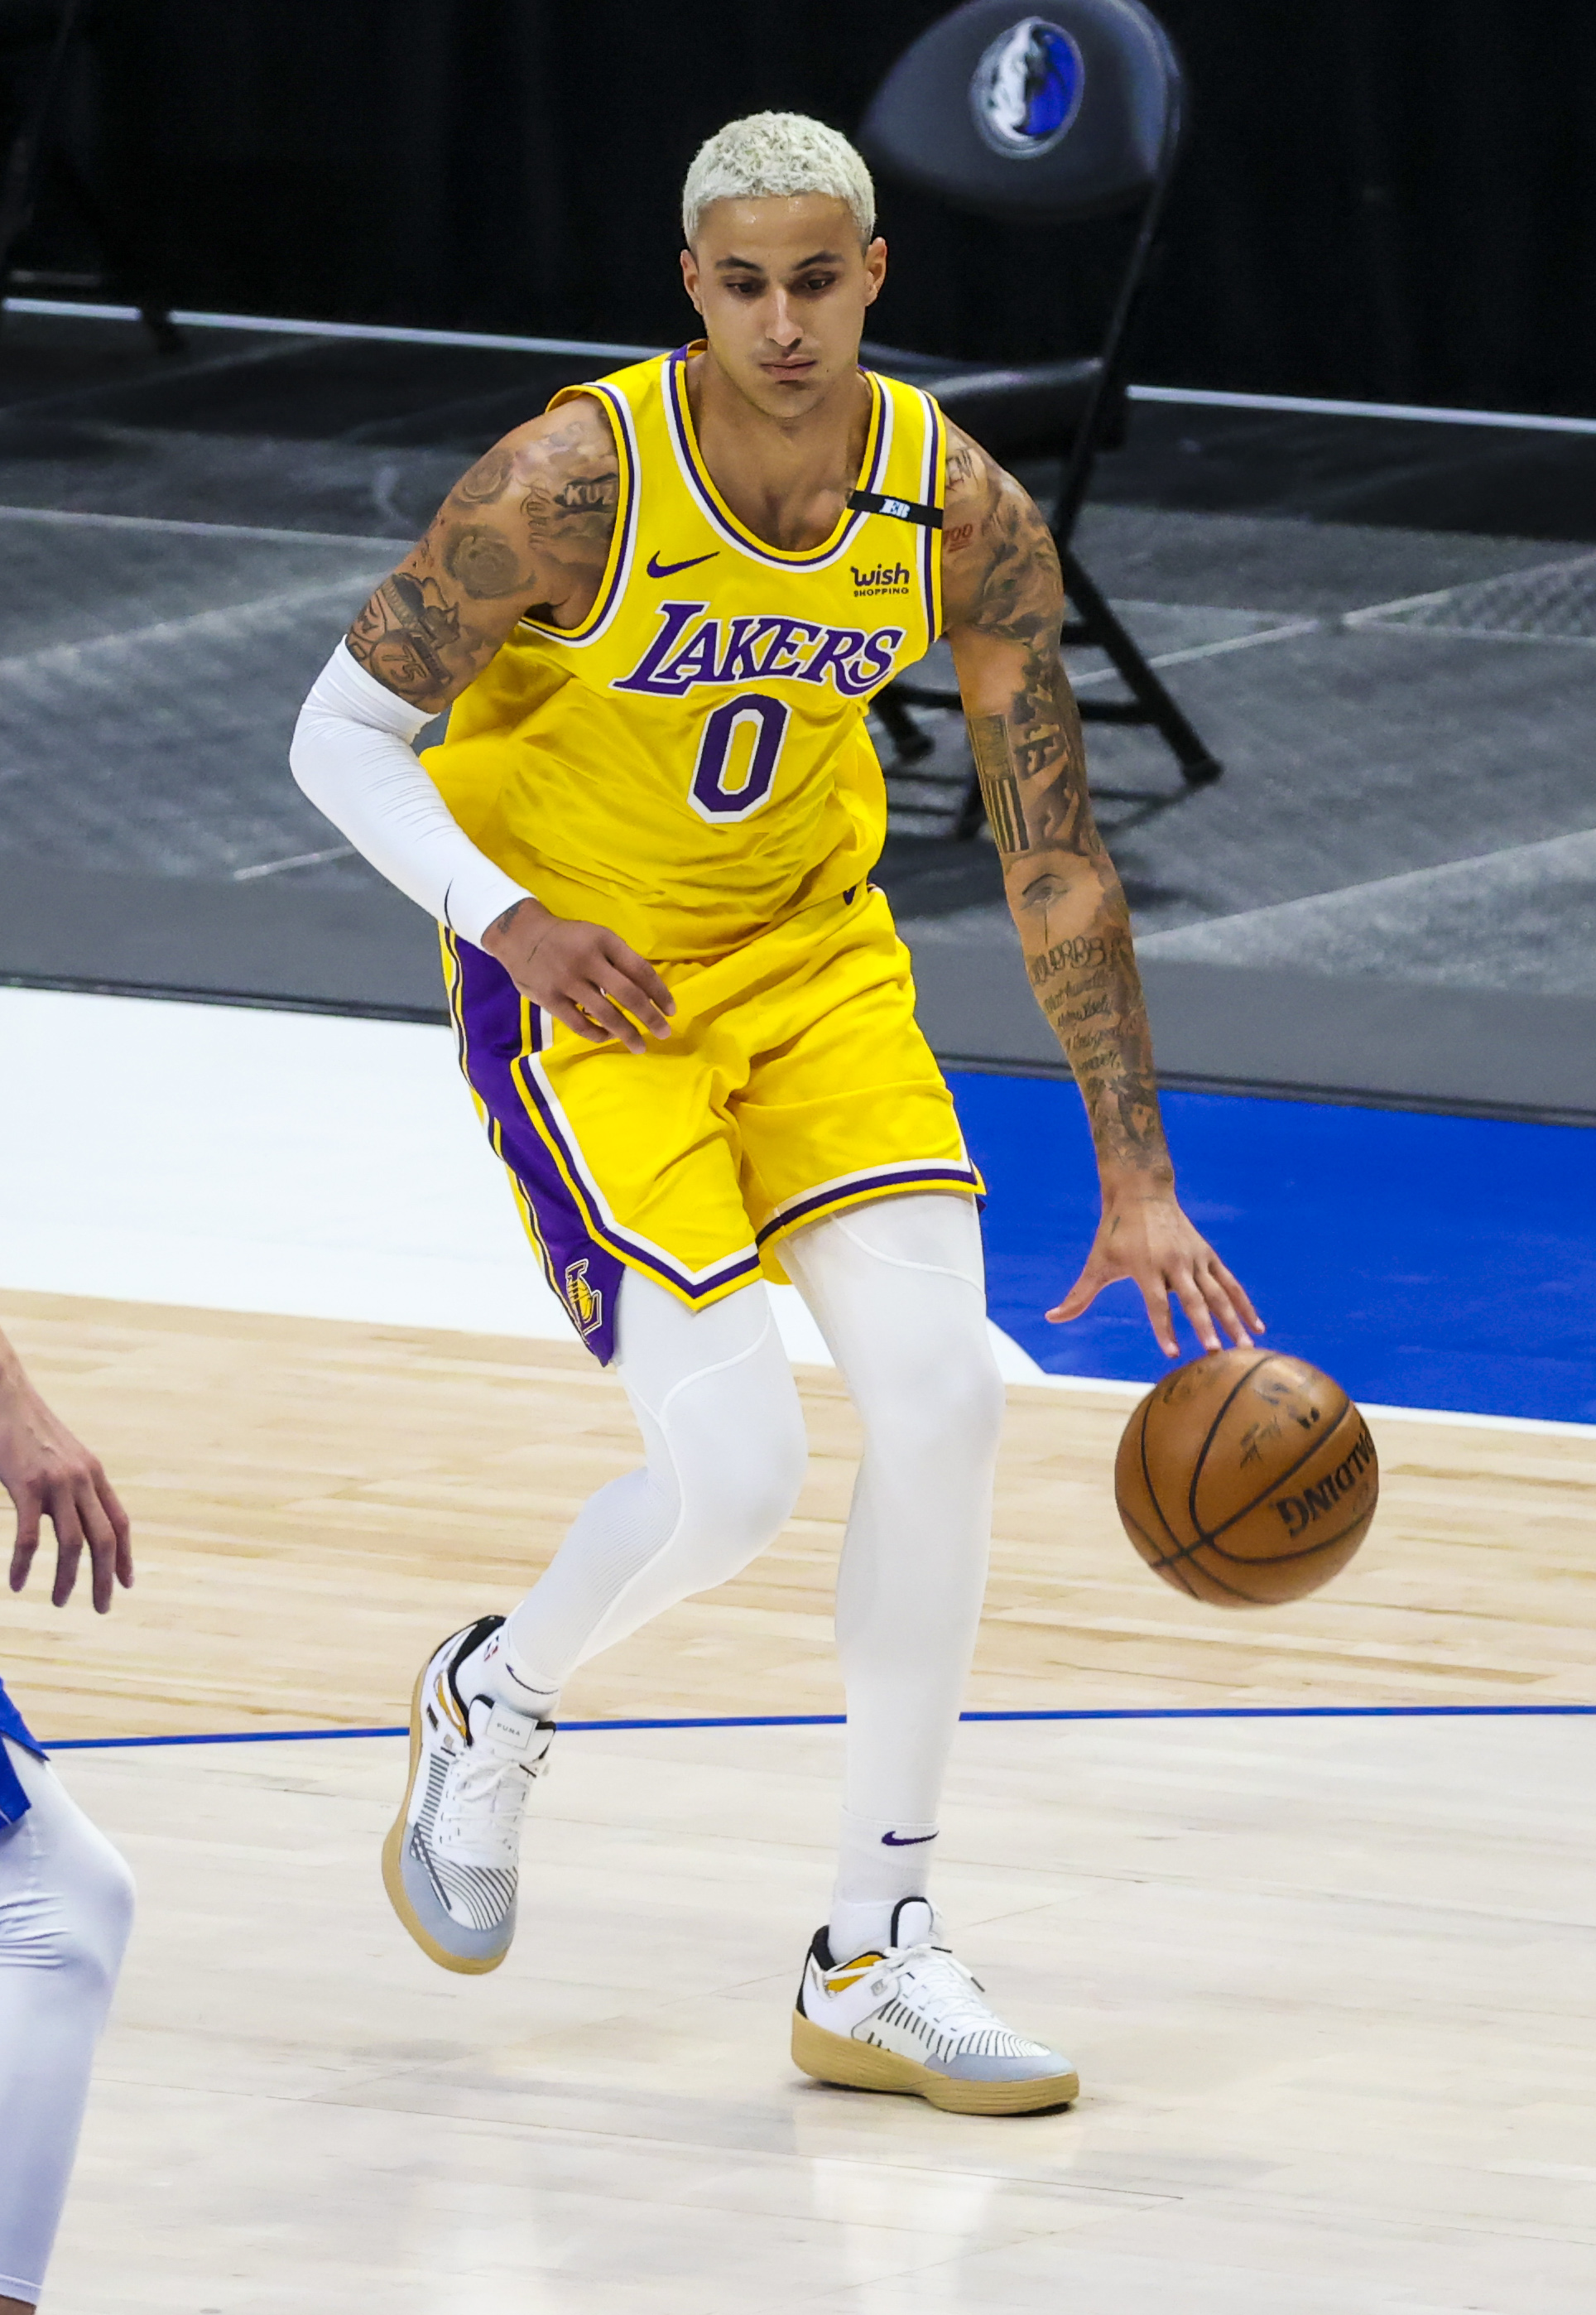 Los Angeles Lakers forward Kyle Kuzma in action during the game against the Dallas Mavericks at American Airlines Center.